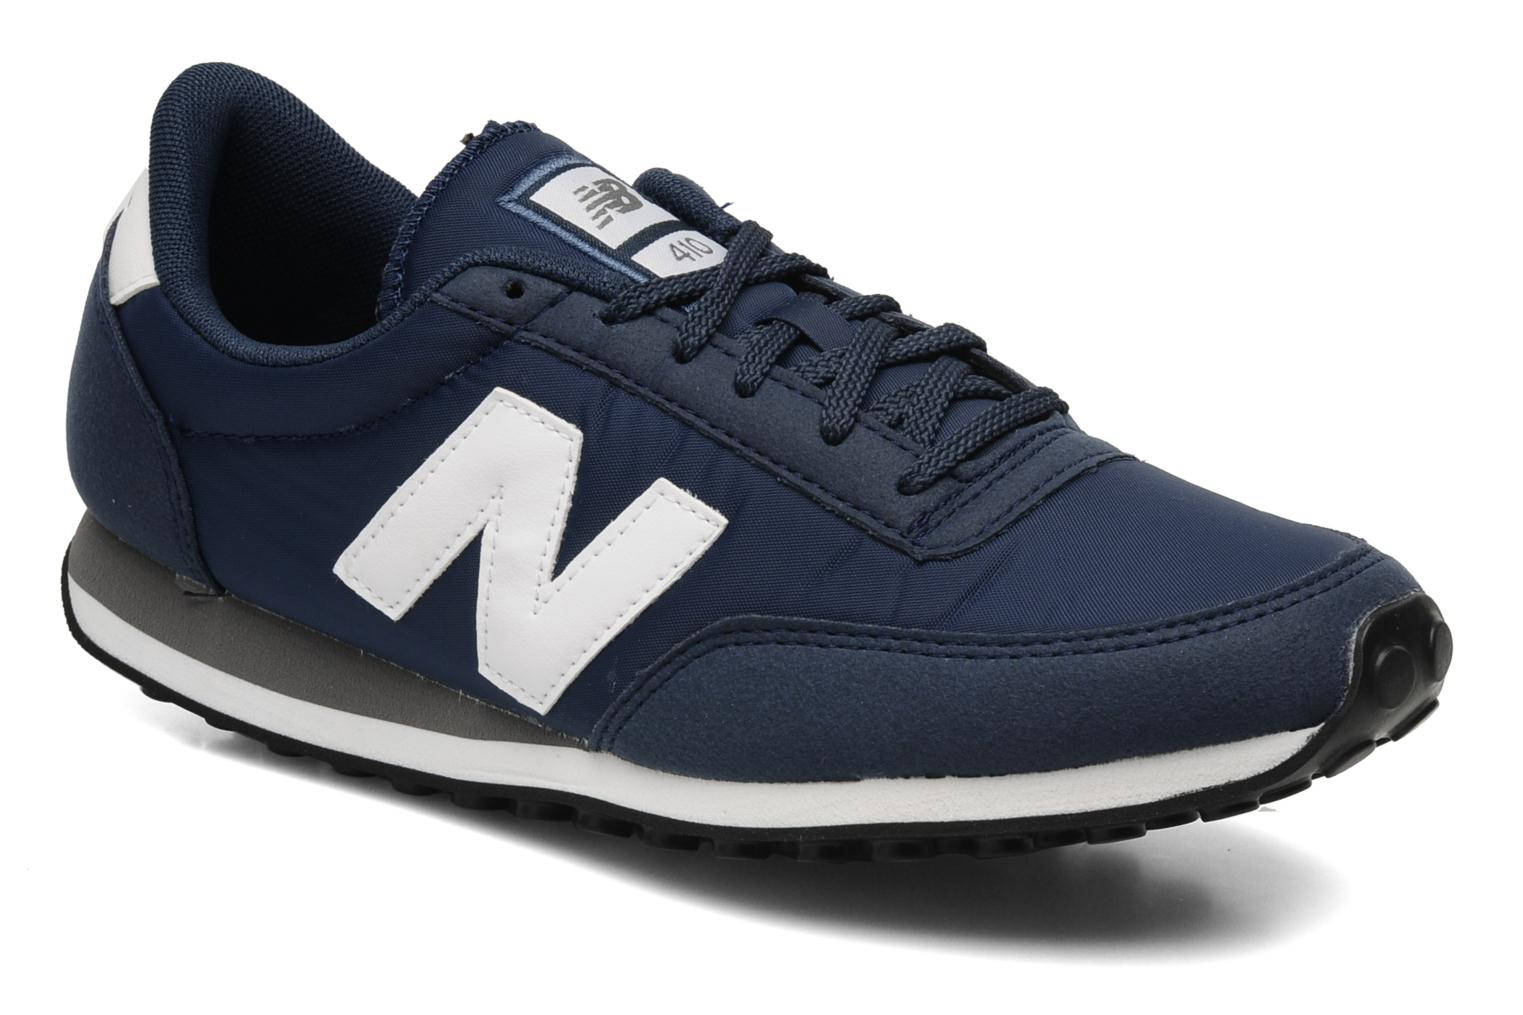 new balance u410 trainers in blue at 115664. Black Bedroom Furniture Sets. Home Design Ideas